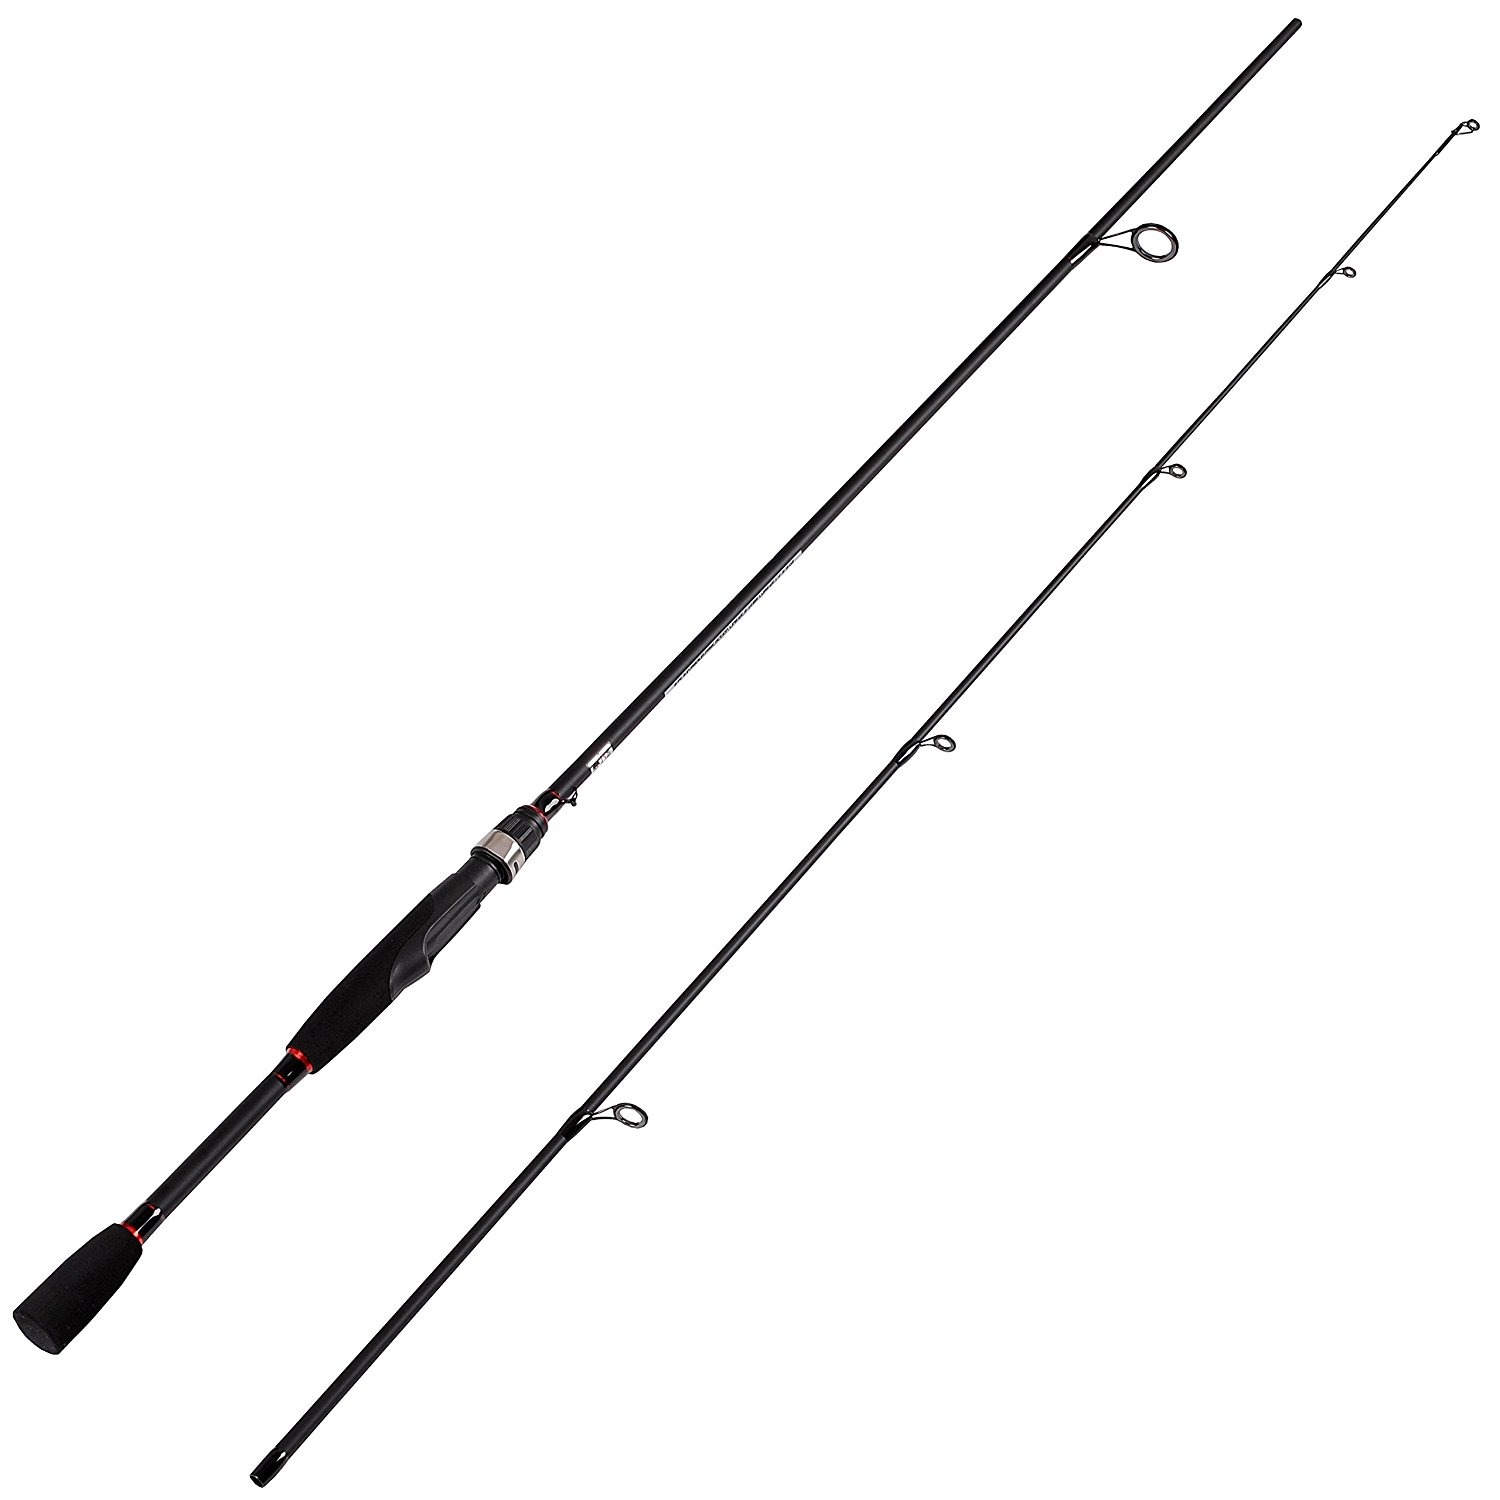 Fiblink Graphite Spinning Rod